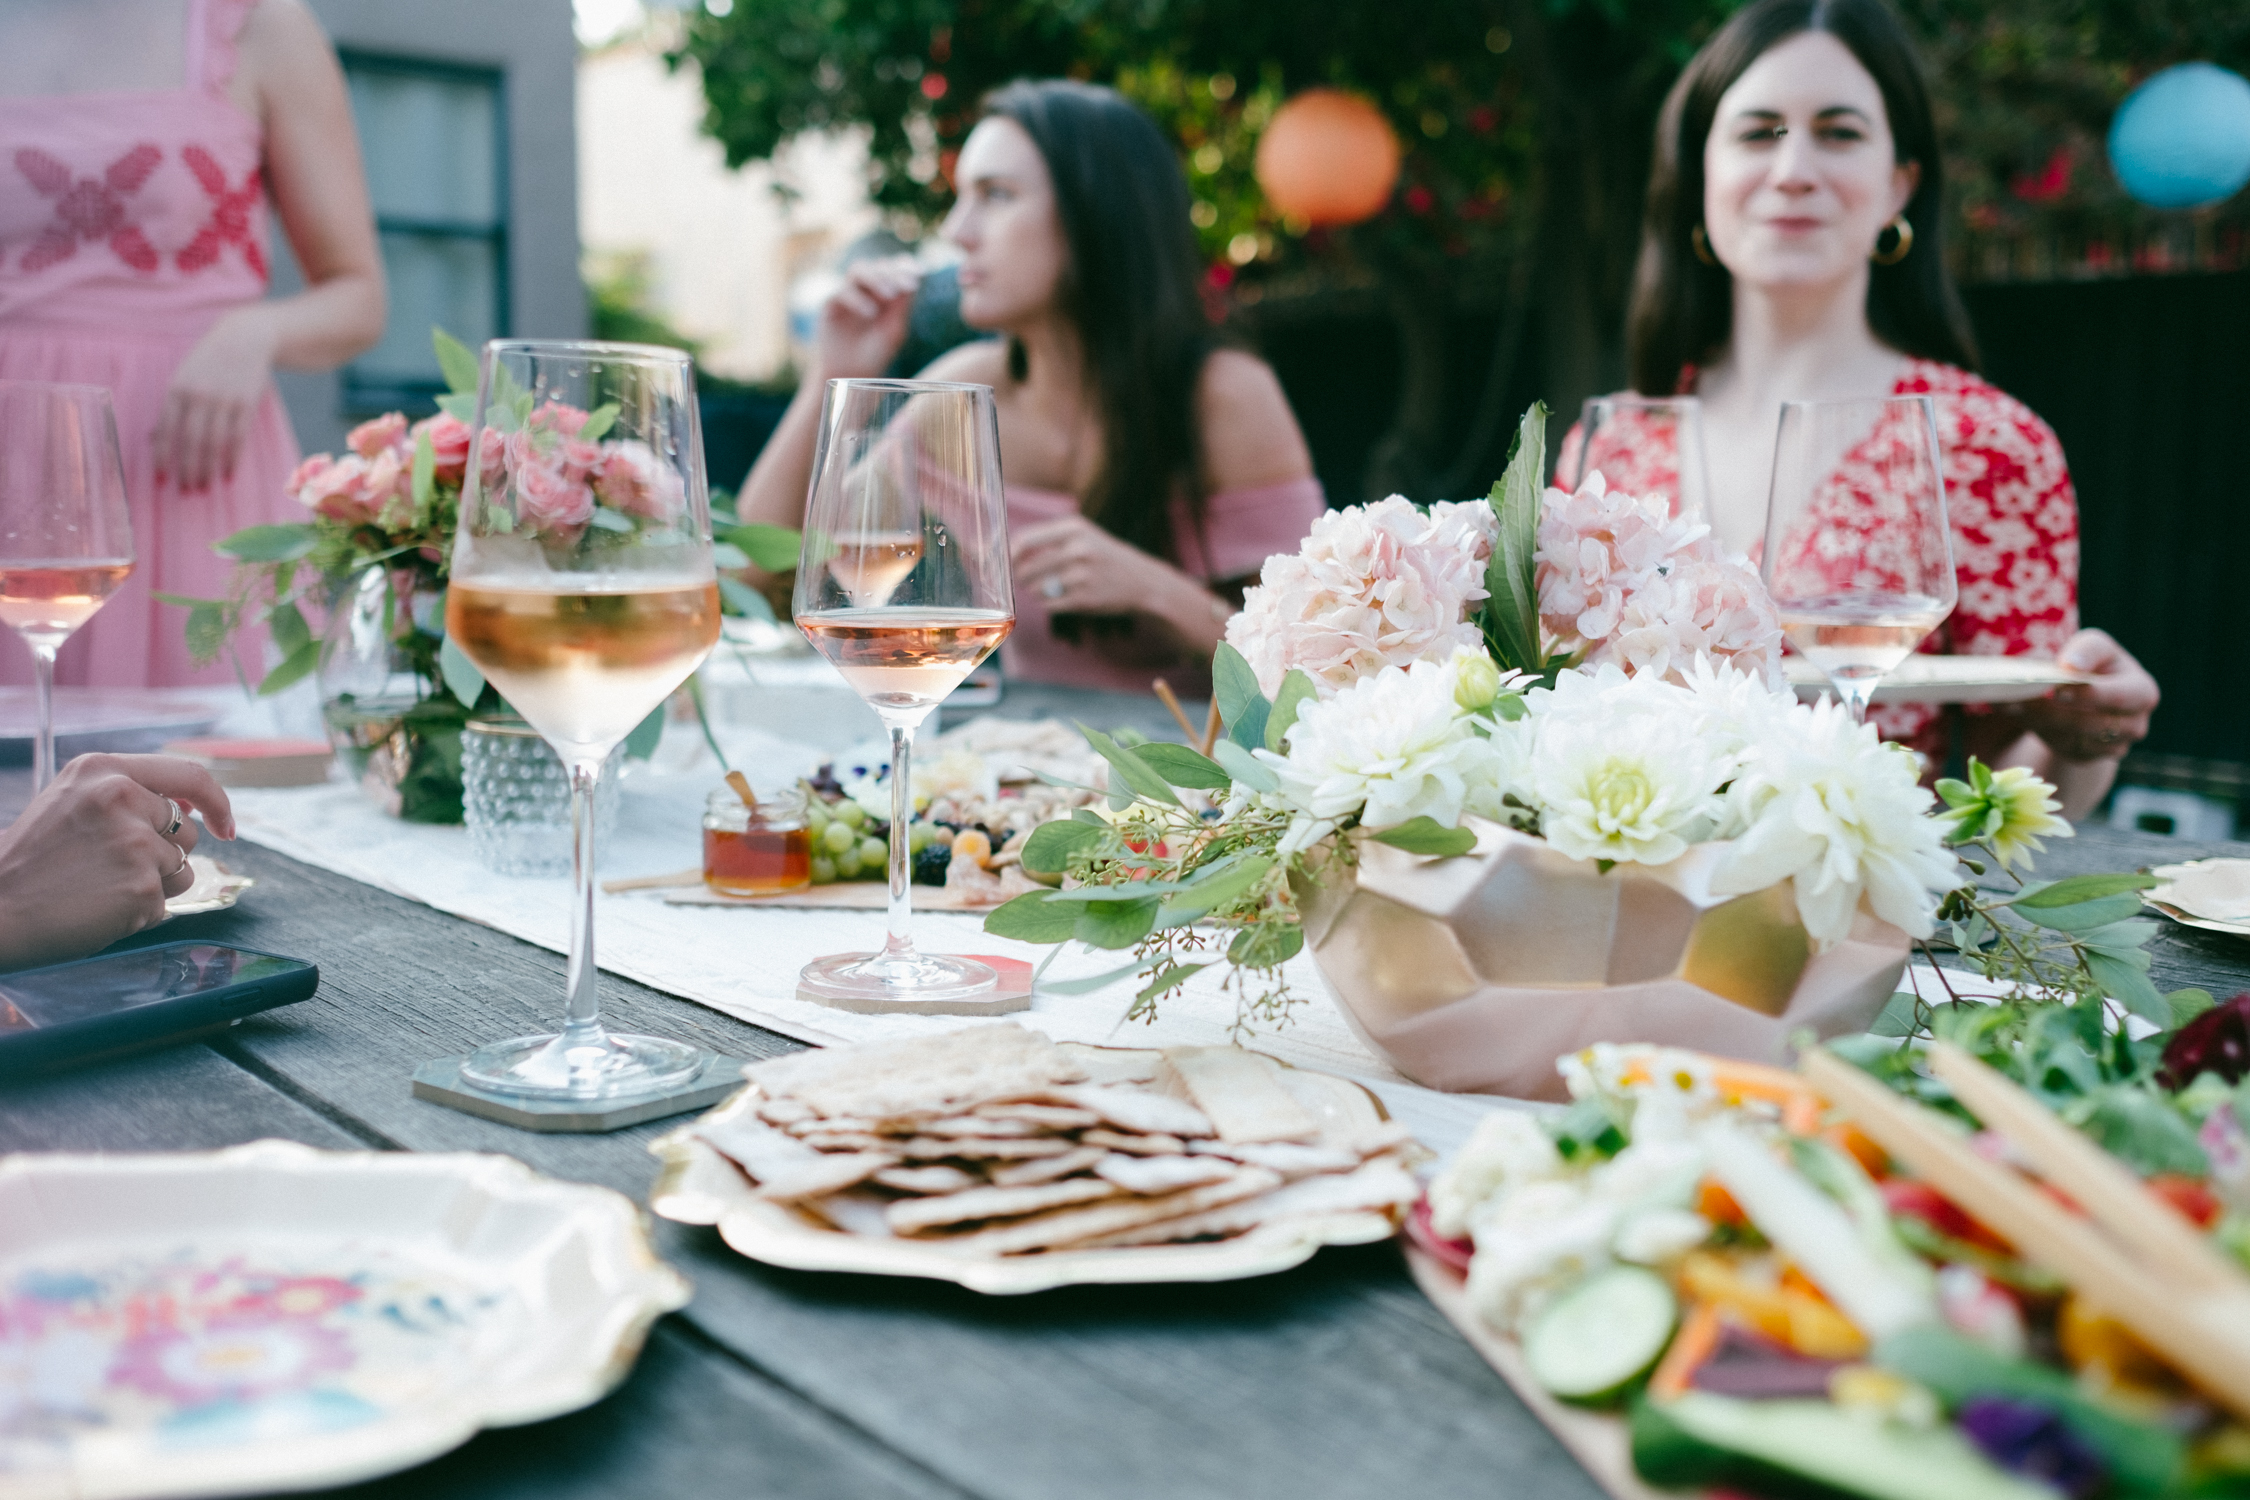 table with food and drinks and women sitting around it